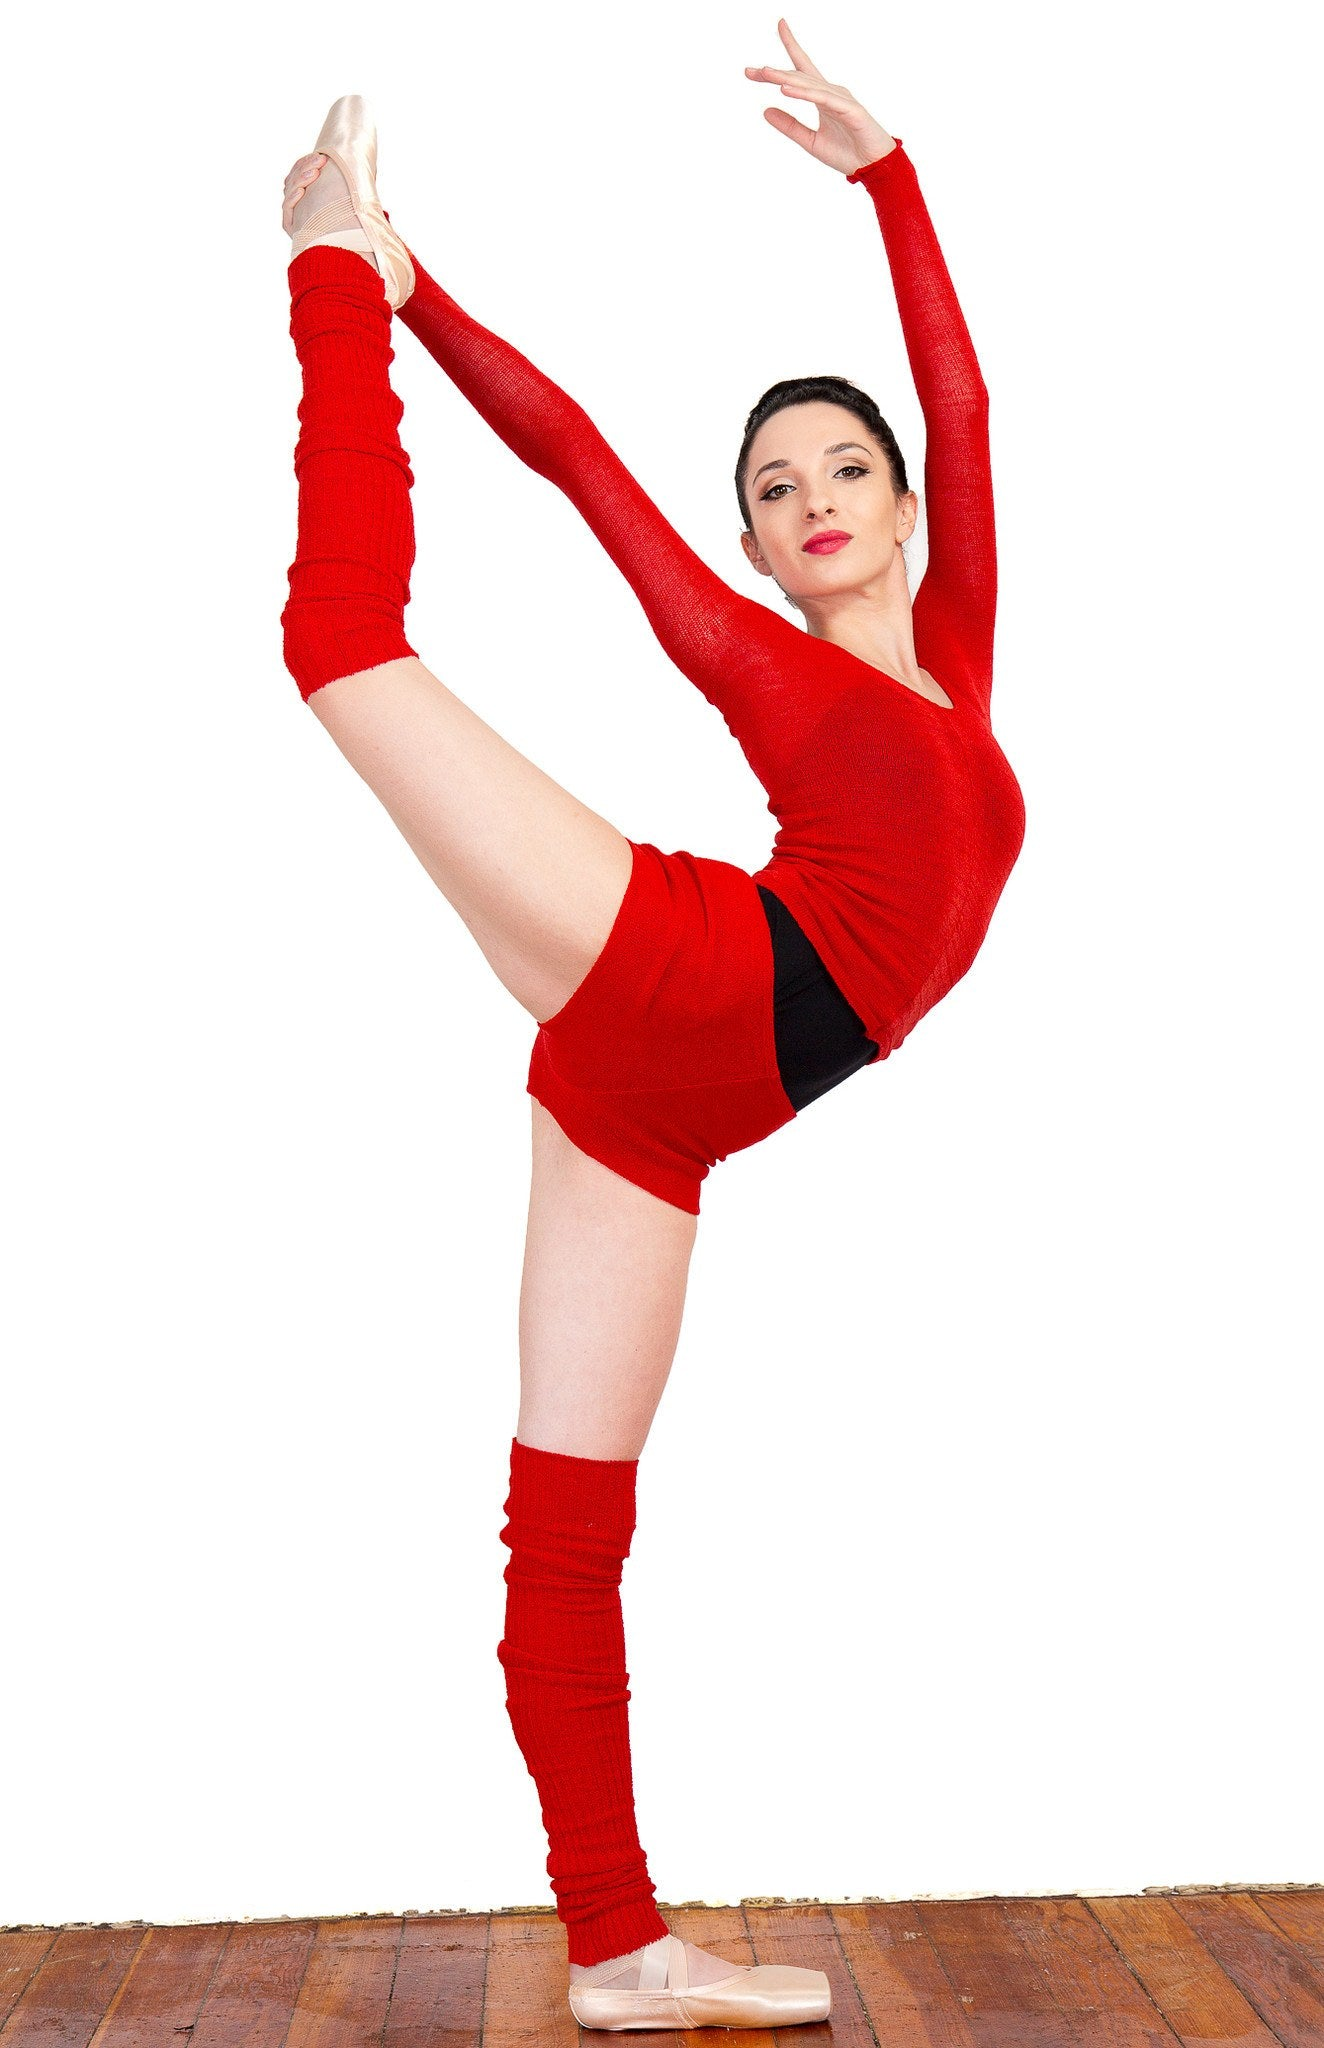 Leg Warmers: Knee High KrinkleSpun Soft Subtle Shine Legwarmers by KD dance New York Made In USA @KDdanceNewYork #MadeInUSA - 4